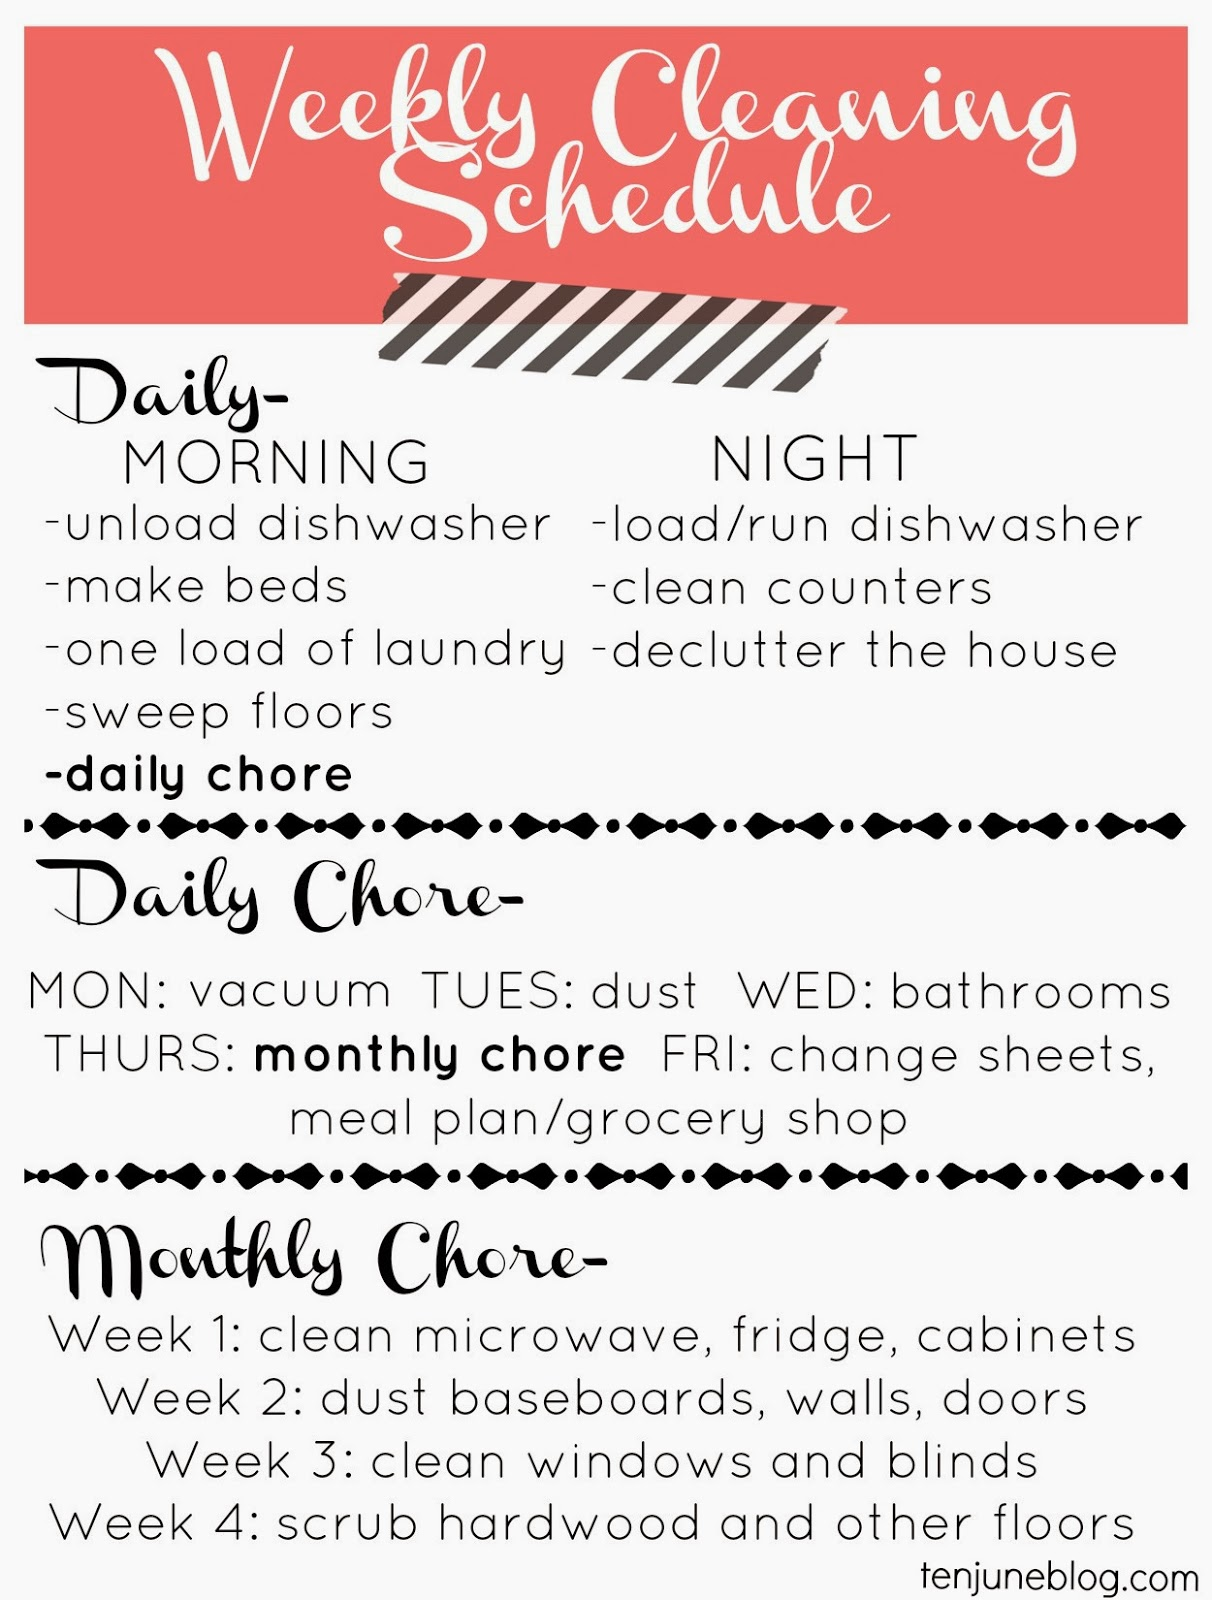 house cleaning weekly schedule for cleaning house. Black Bedroom Furniture Sets. Home Design Ideas